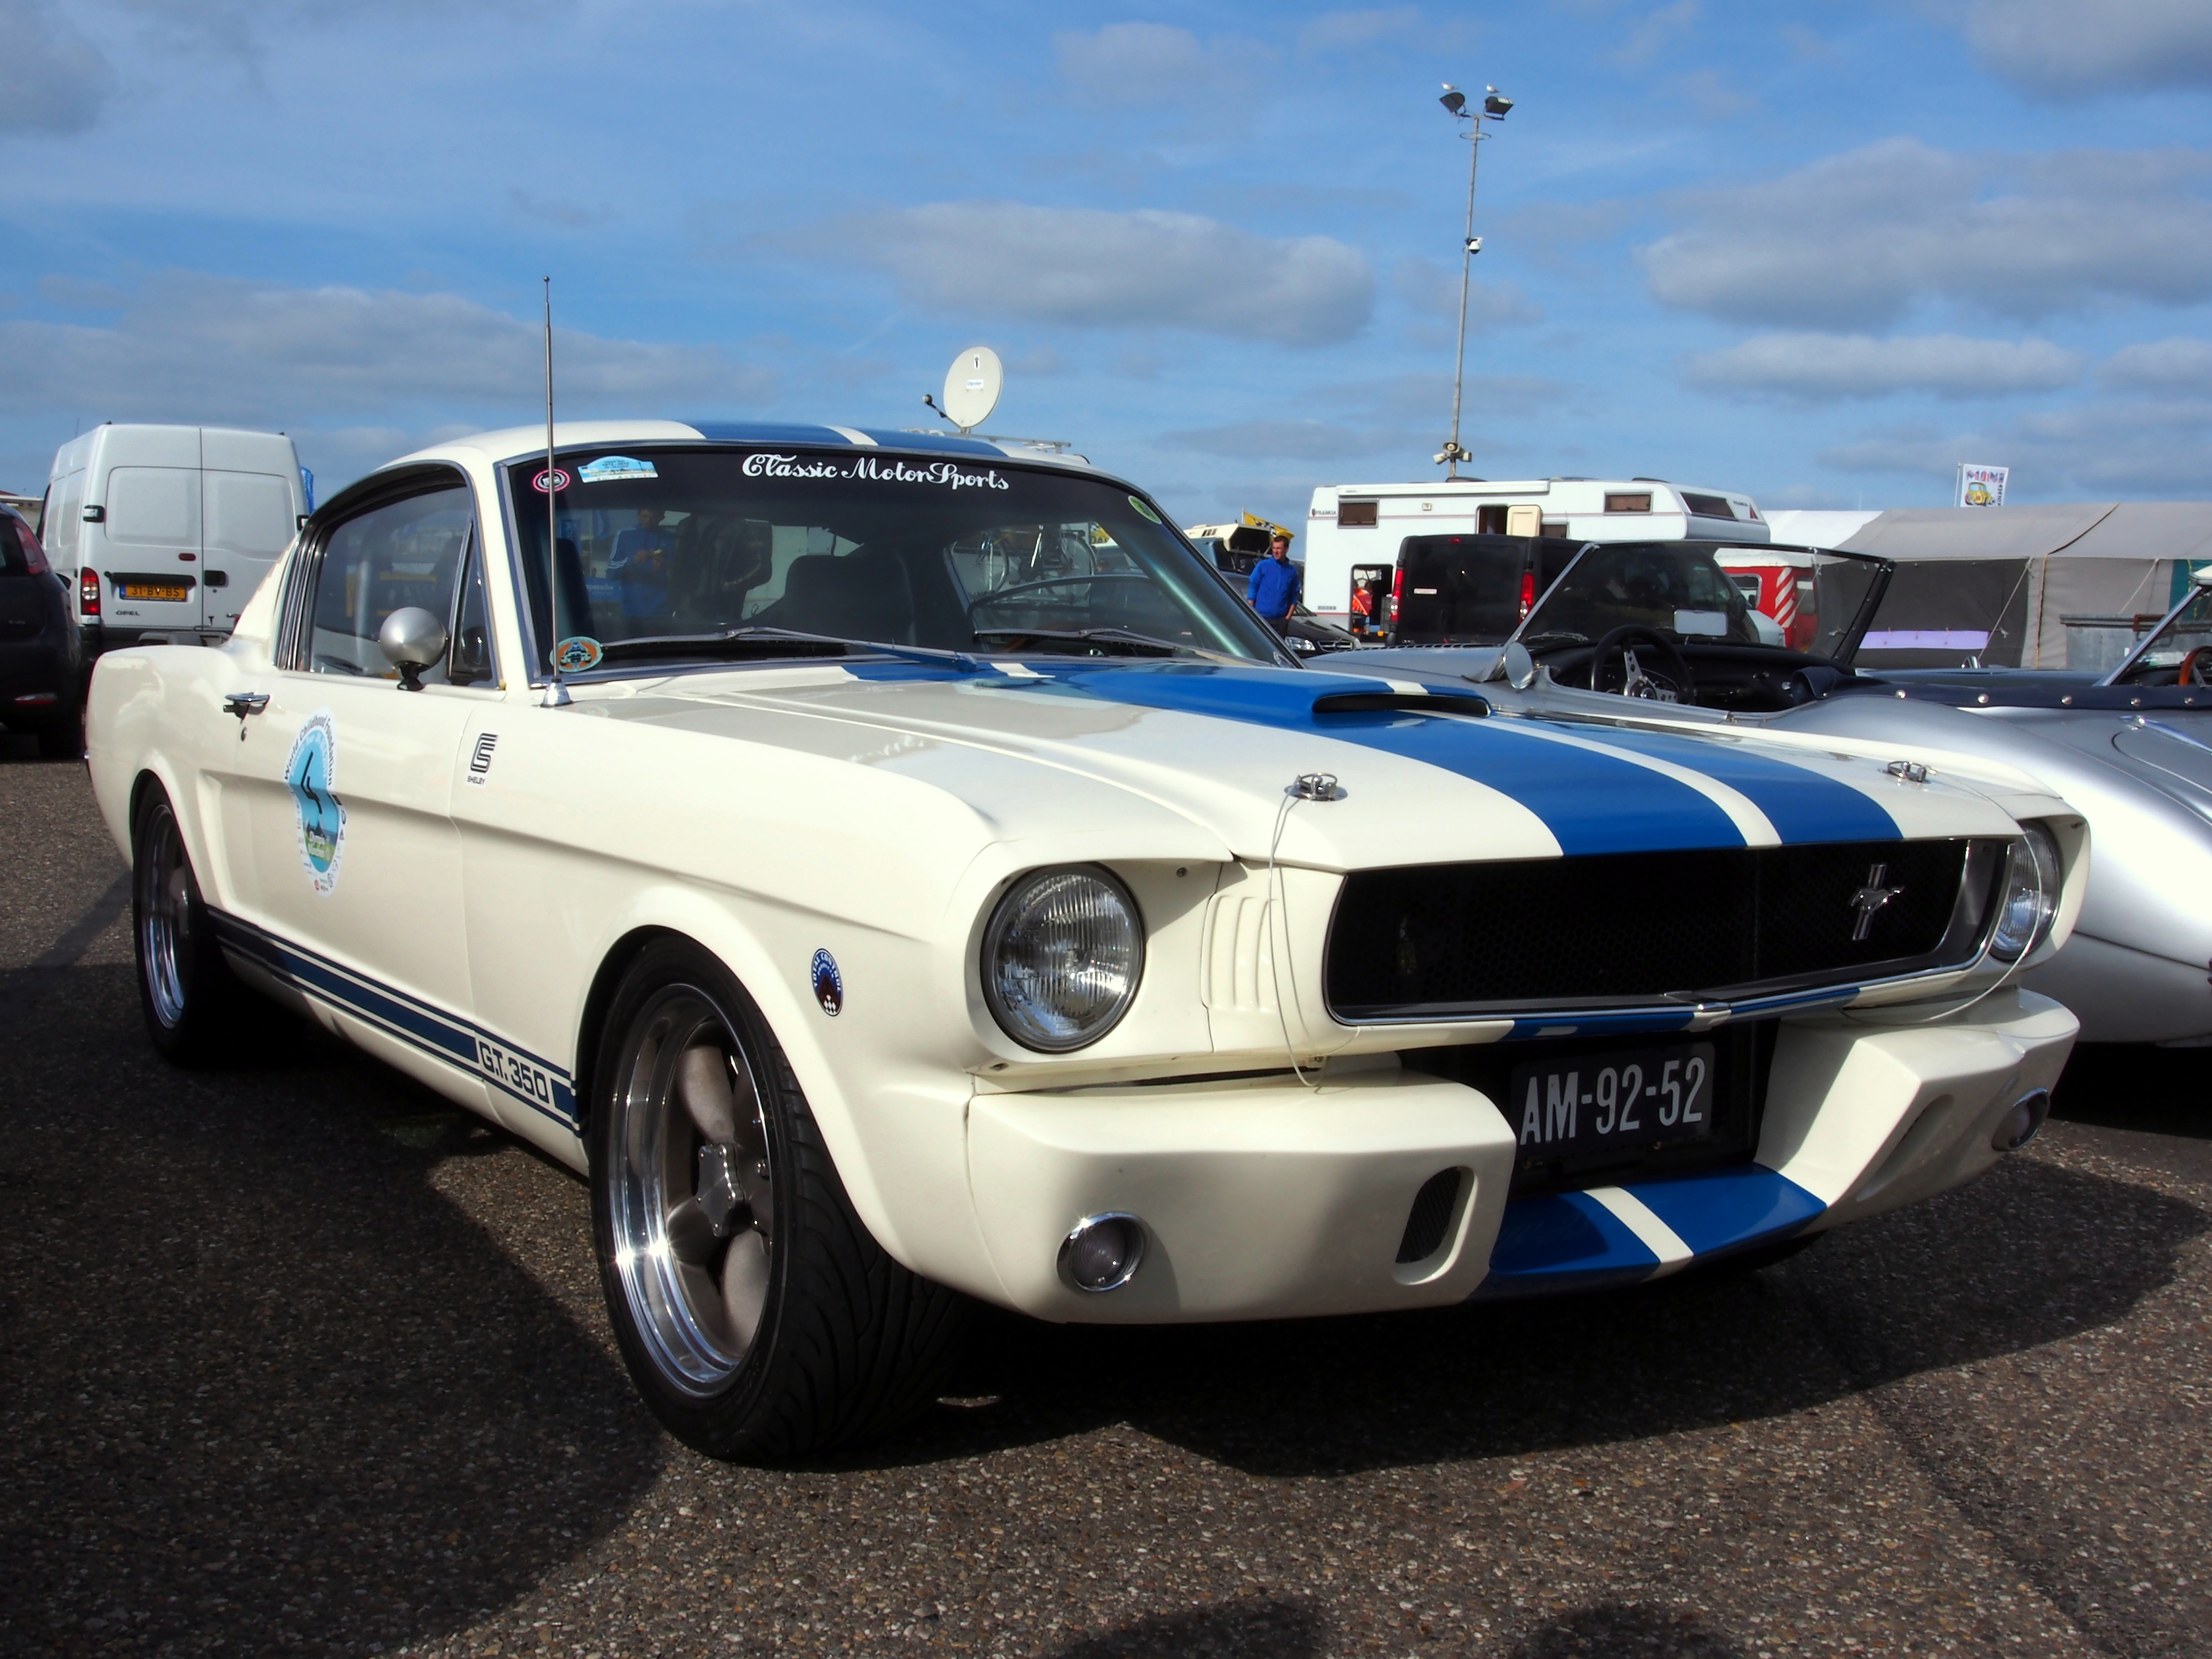 Muscle Cars 4 You: 1965 Ford Mustang (The Best Car Ever!)